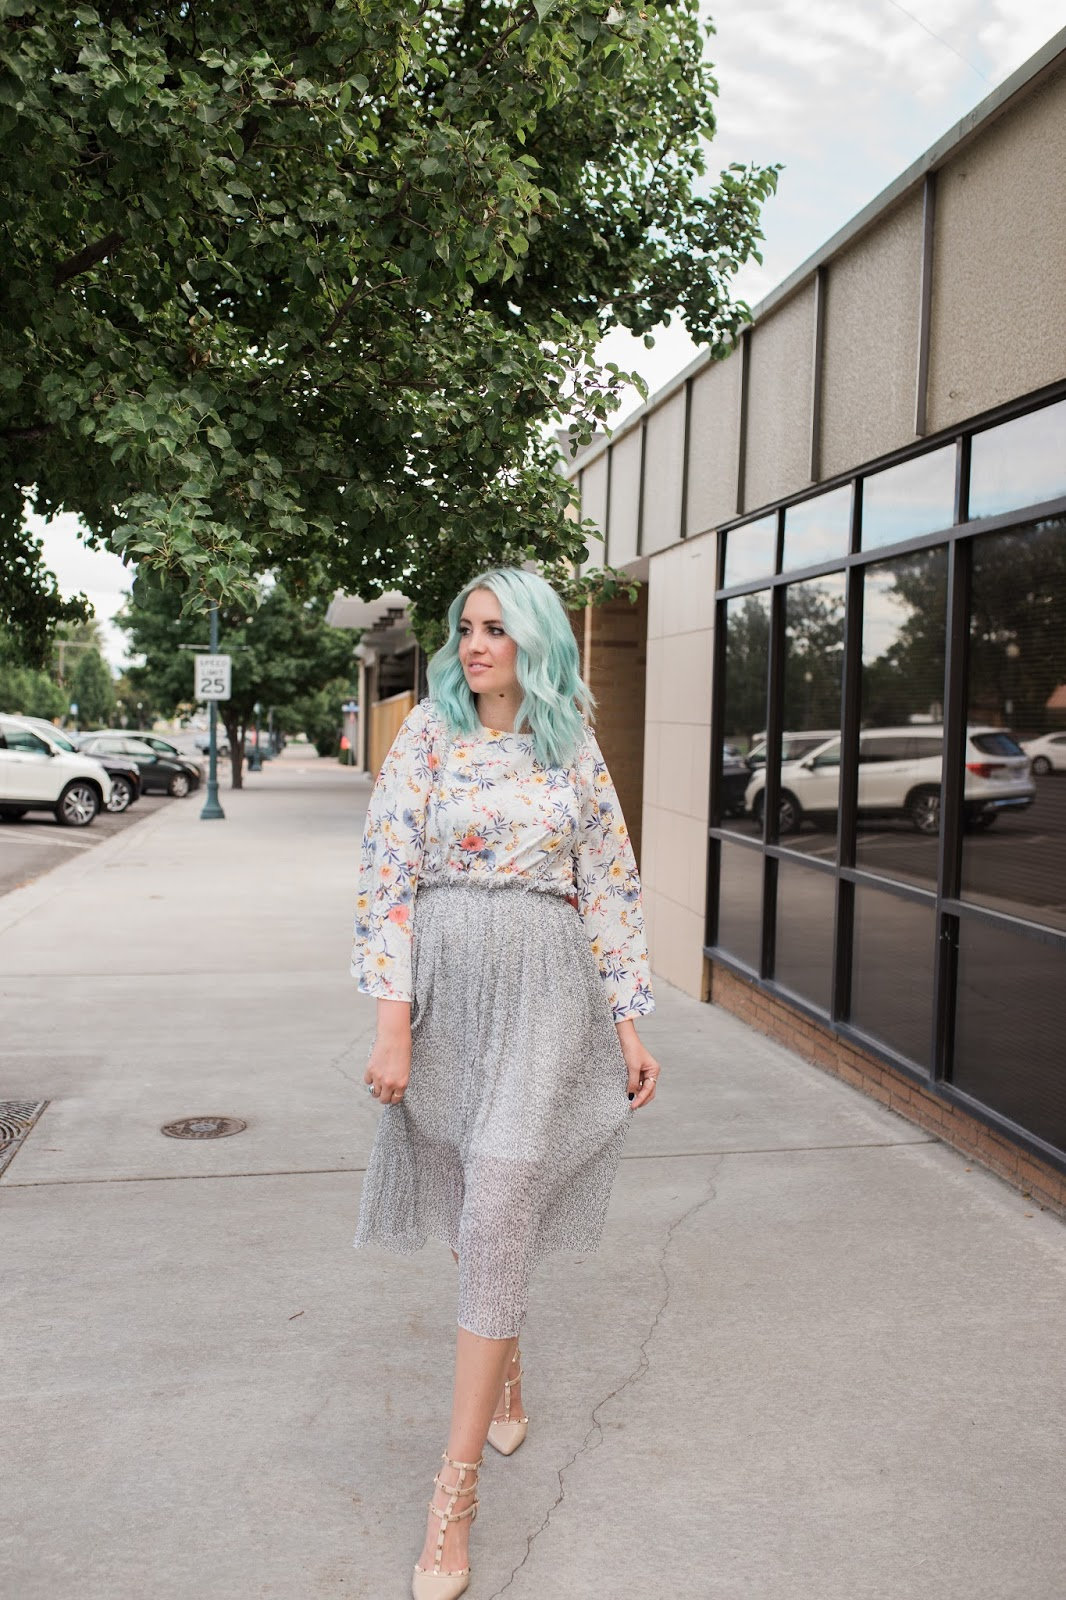 Blue hair, Utah Fashion blogger, Modesty